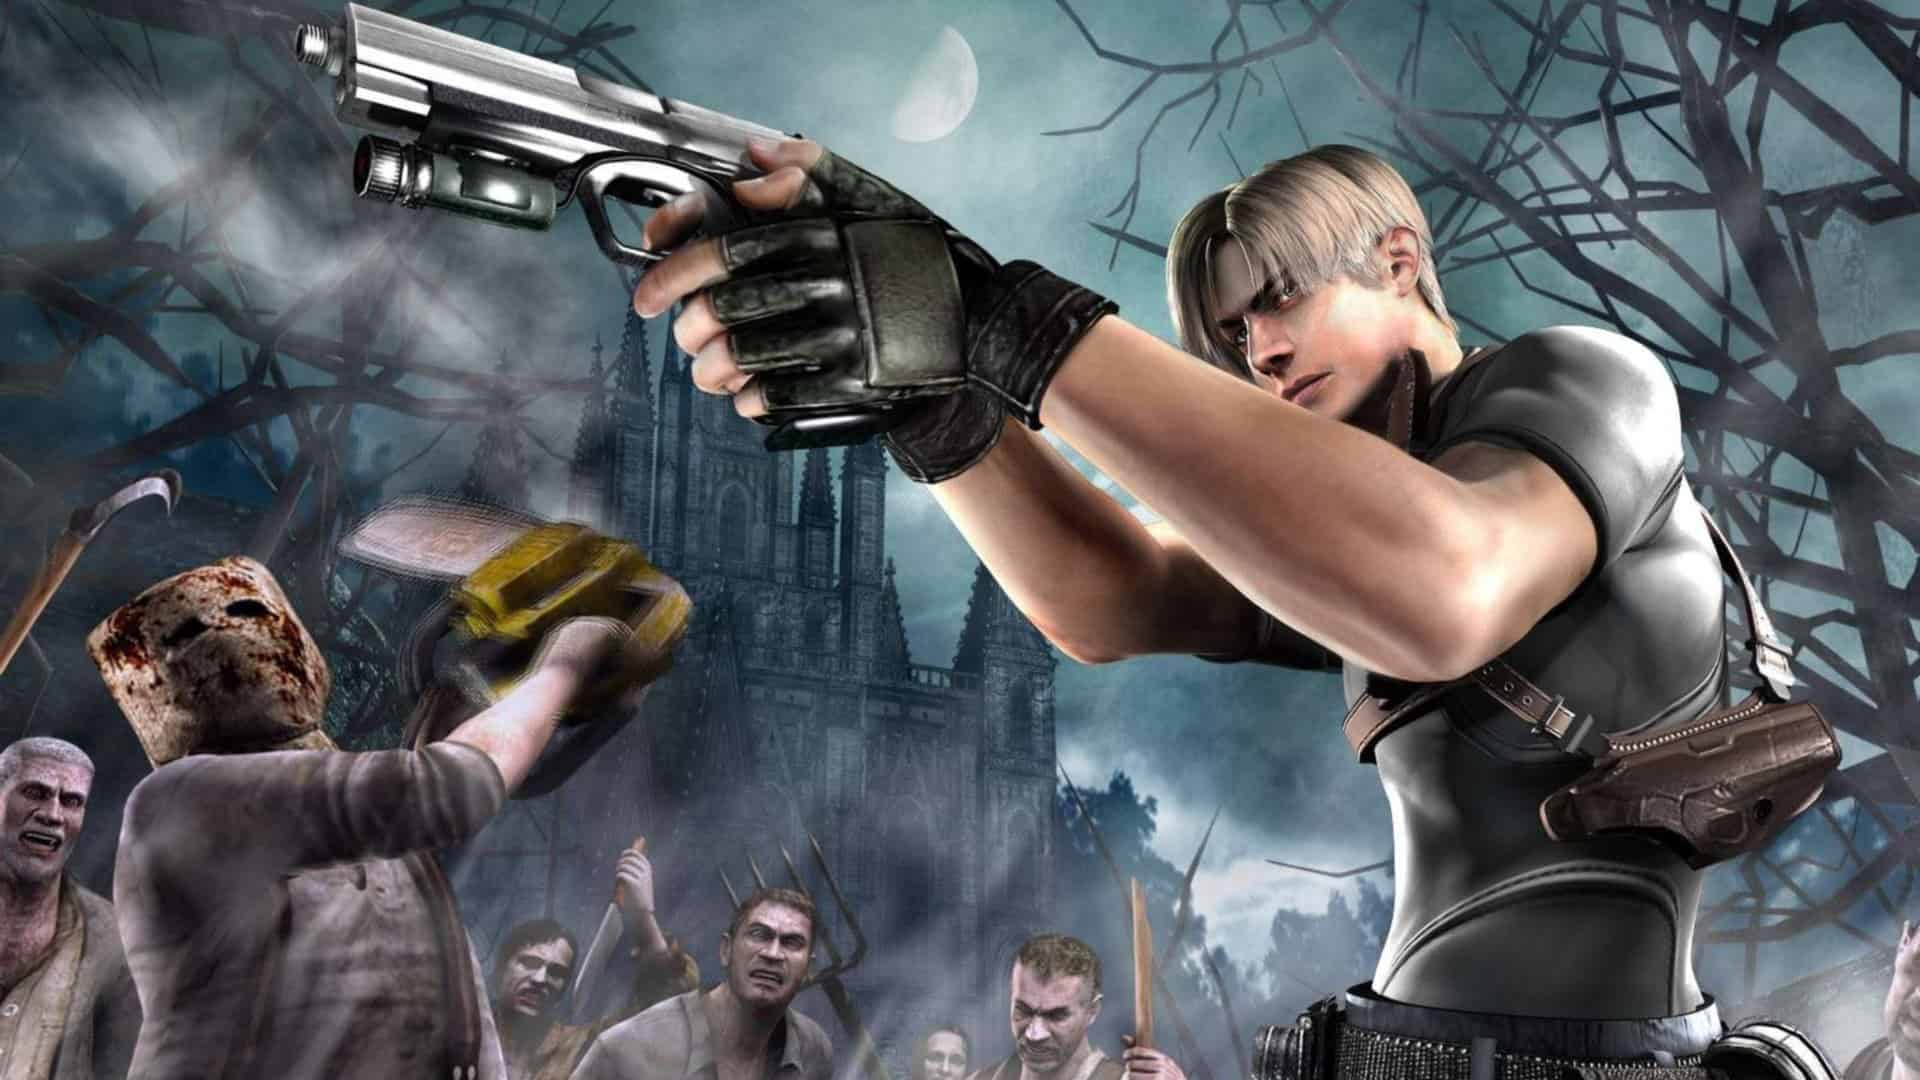 Guide Resident Evil 4 Remake Ps5 Release Date Gameplay Price